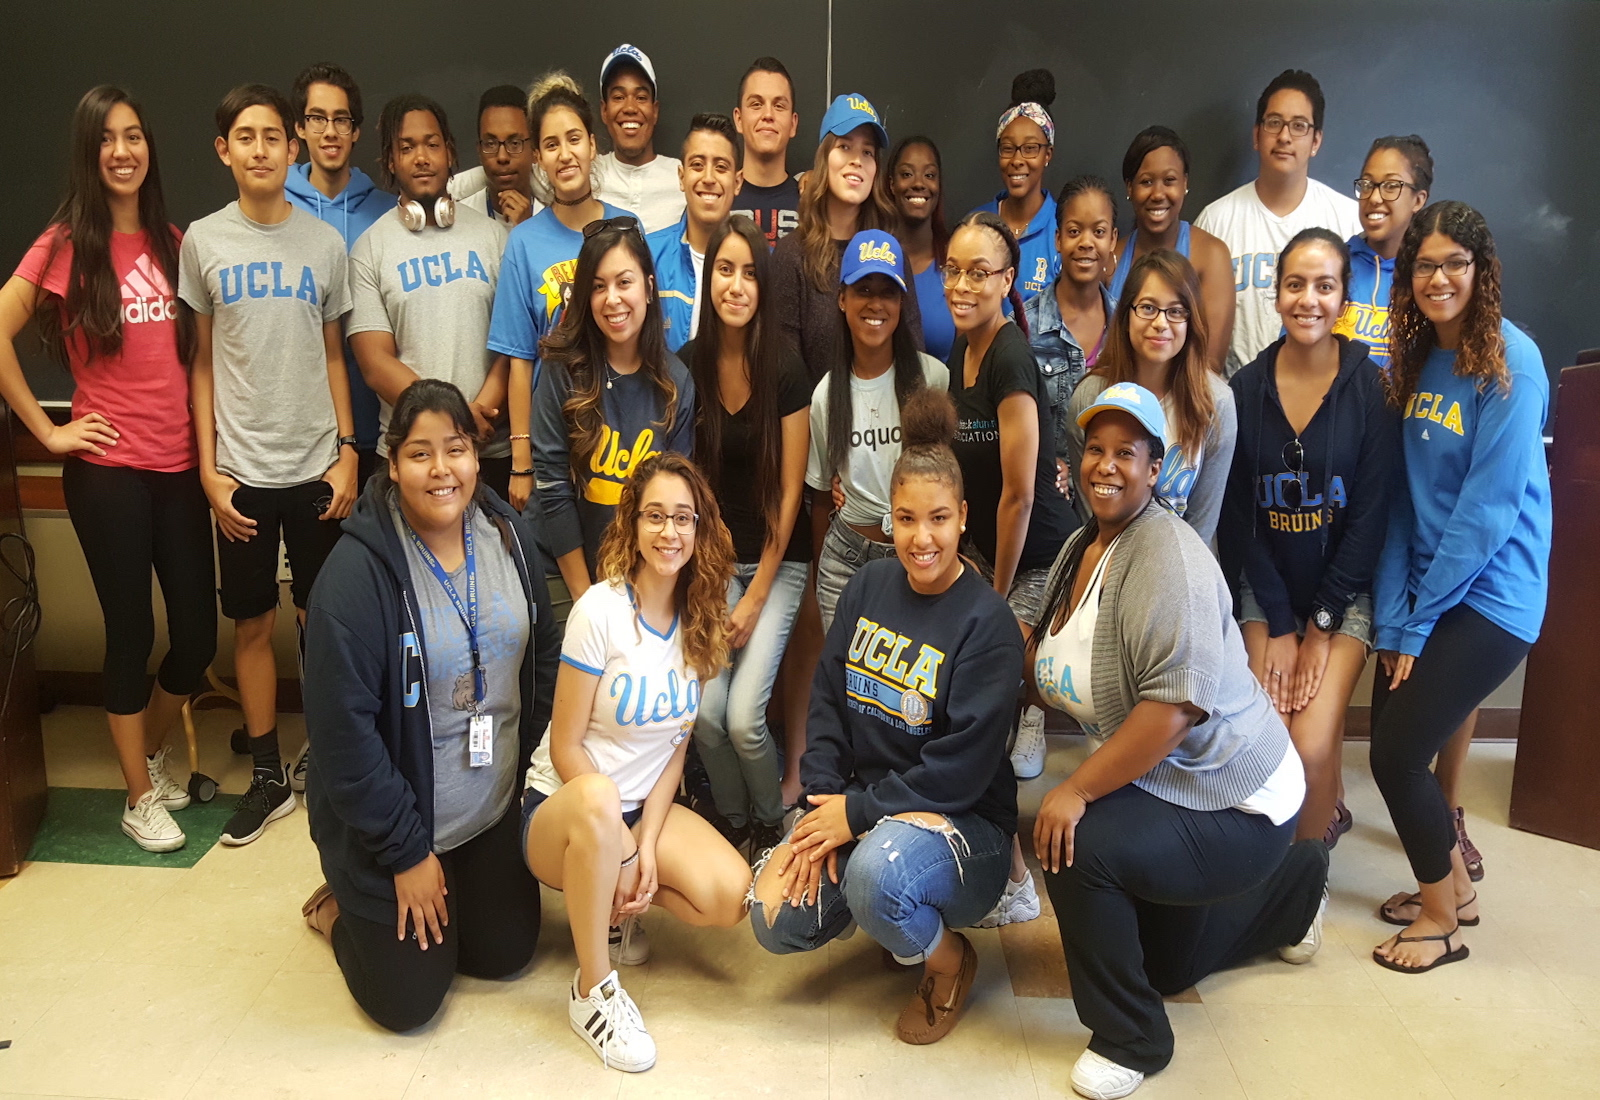 MS. POSTON'S STUDENTS: IN THEIR OWN WORDS  Want to know Leslie's impact as an educator of college-aspiring and college-attending youth for the last seven years?   Read  what intended math and science majors have to say about their experiences in her freshman-level English Composition course in UCLA's  Freshman Summer Program .   Read  what 10th graders from 10 public high schools in Los Angeles and Pasadena have to say about their experience in her intensive two-week Writing and Critical Thinking course for  VIP Scholars  at UCLA.